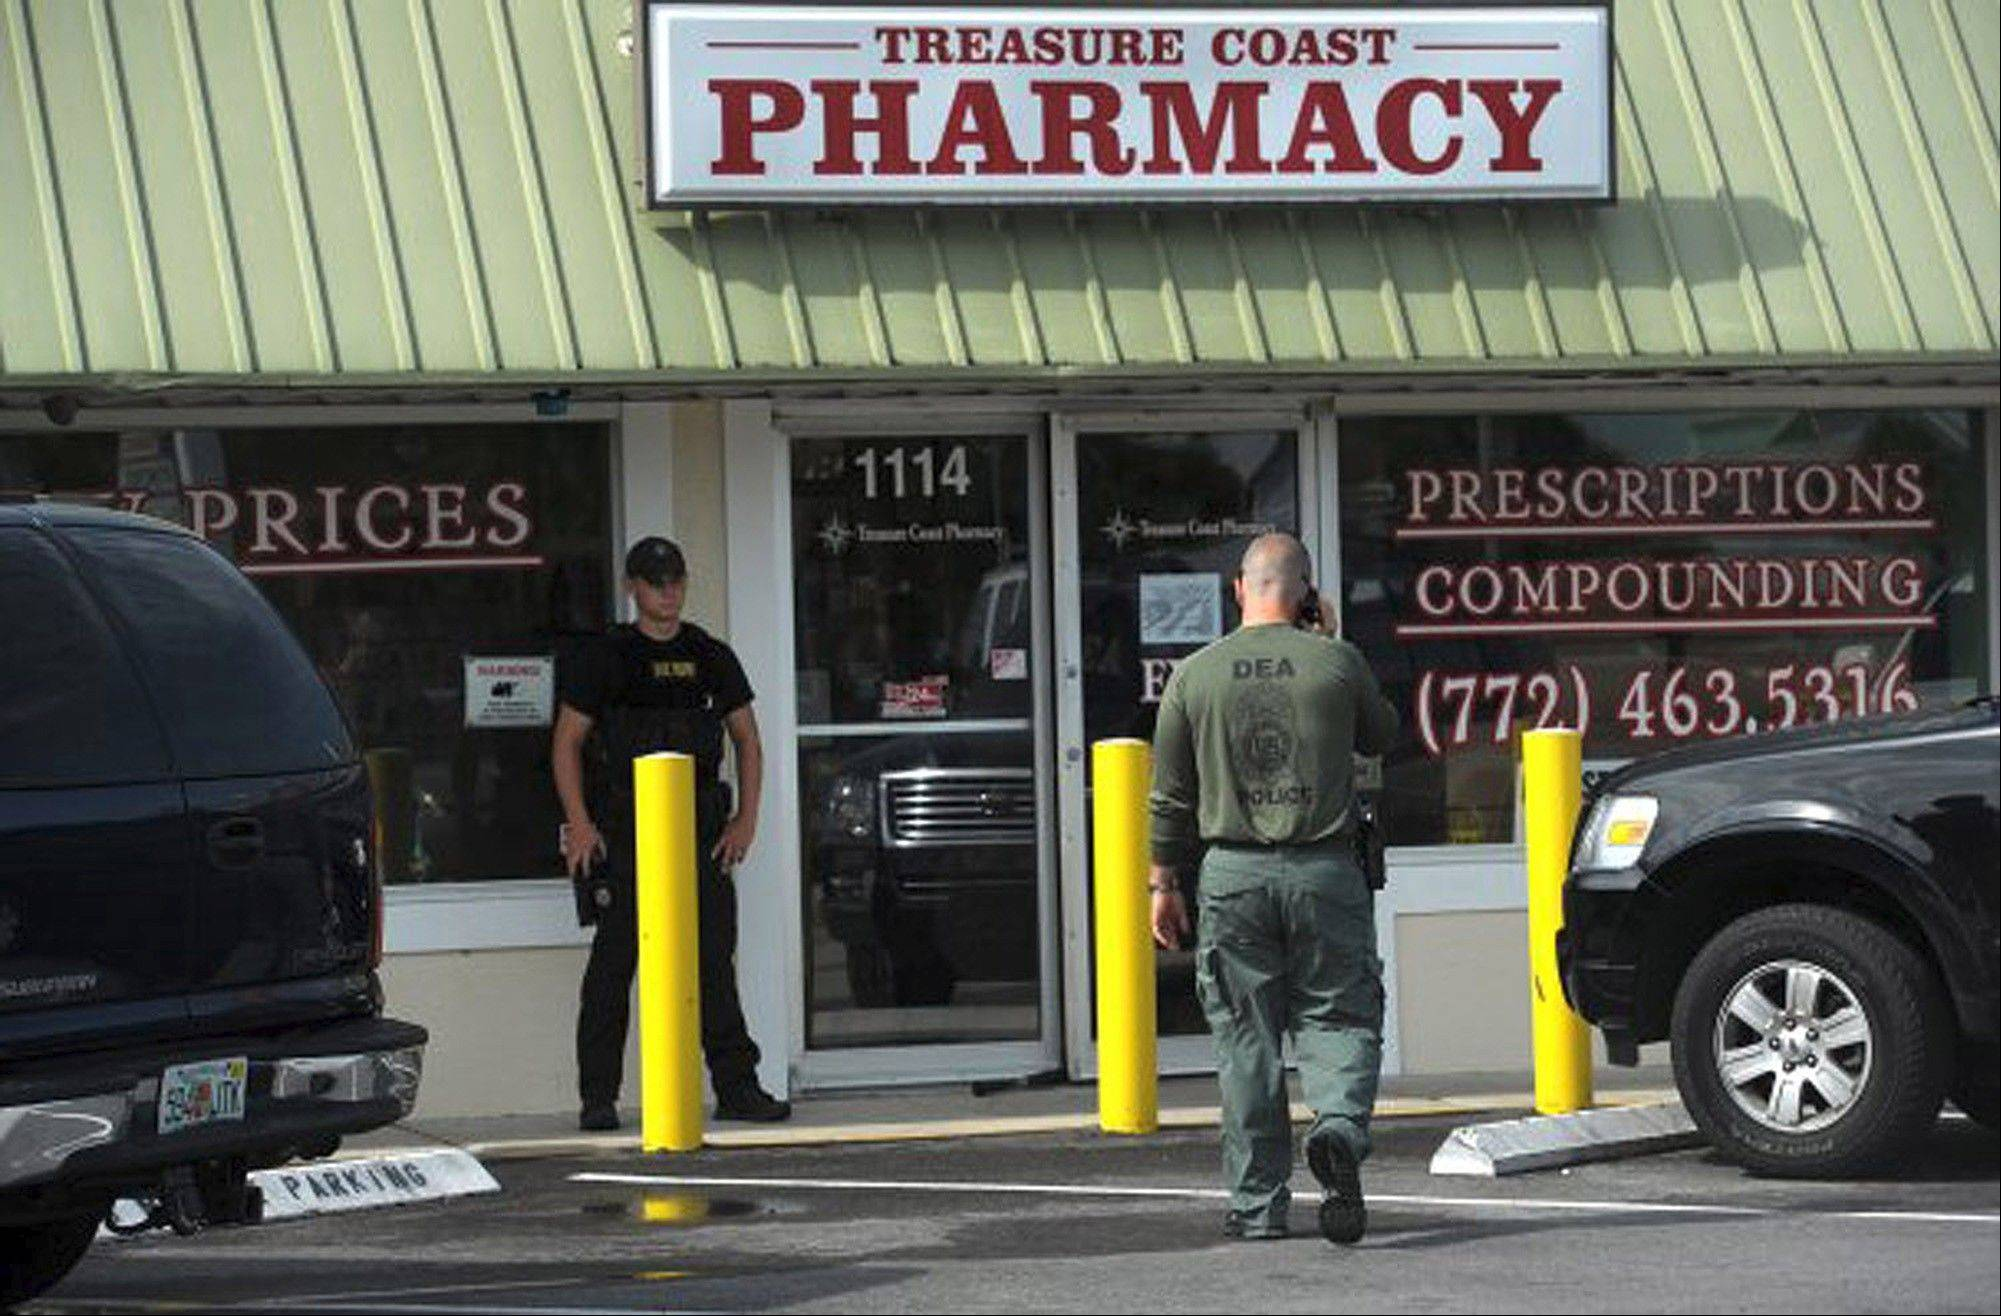 In this Tuesday, June 28, 2011 photo, agents with the Drug Enforcement Administration stand outside the Treasure Coast Pharmacy in Jensen Beach after a raid. shortly before it opened Tuesday morning as part of an ongoing investigation. DEA, the Florida Department of Health, Florida State Troopers, Martin County Sheriff's deputies and Boca Raton and Margate police participated in the investigation.